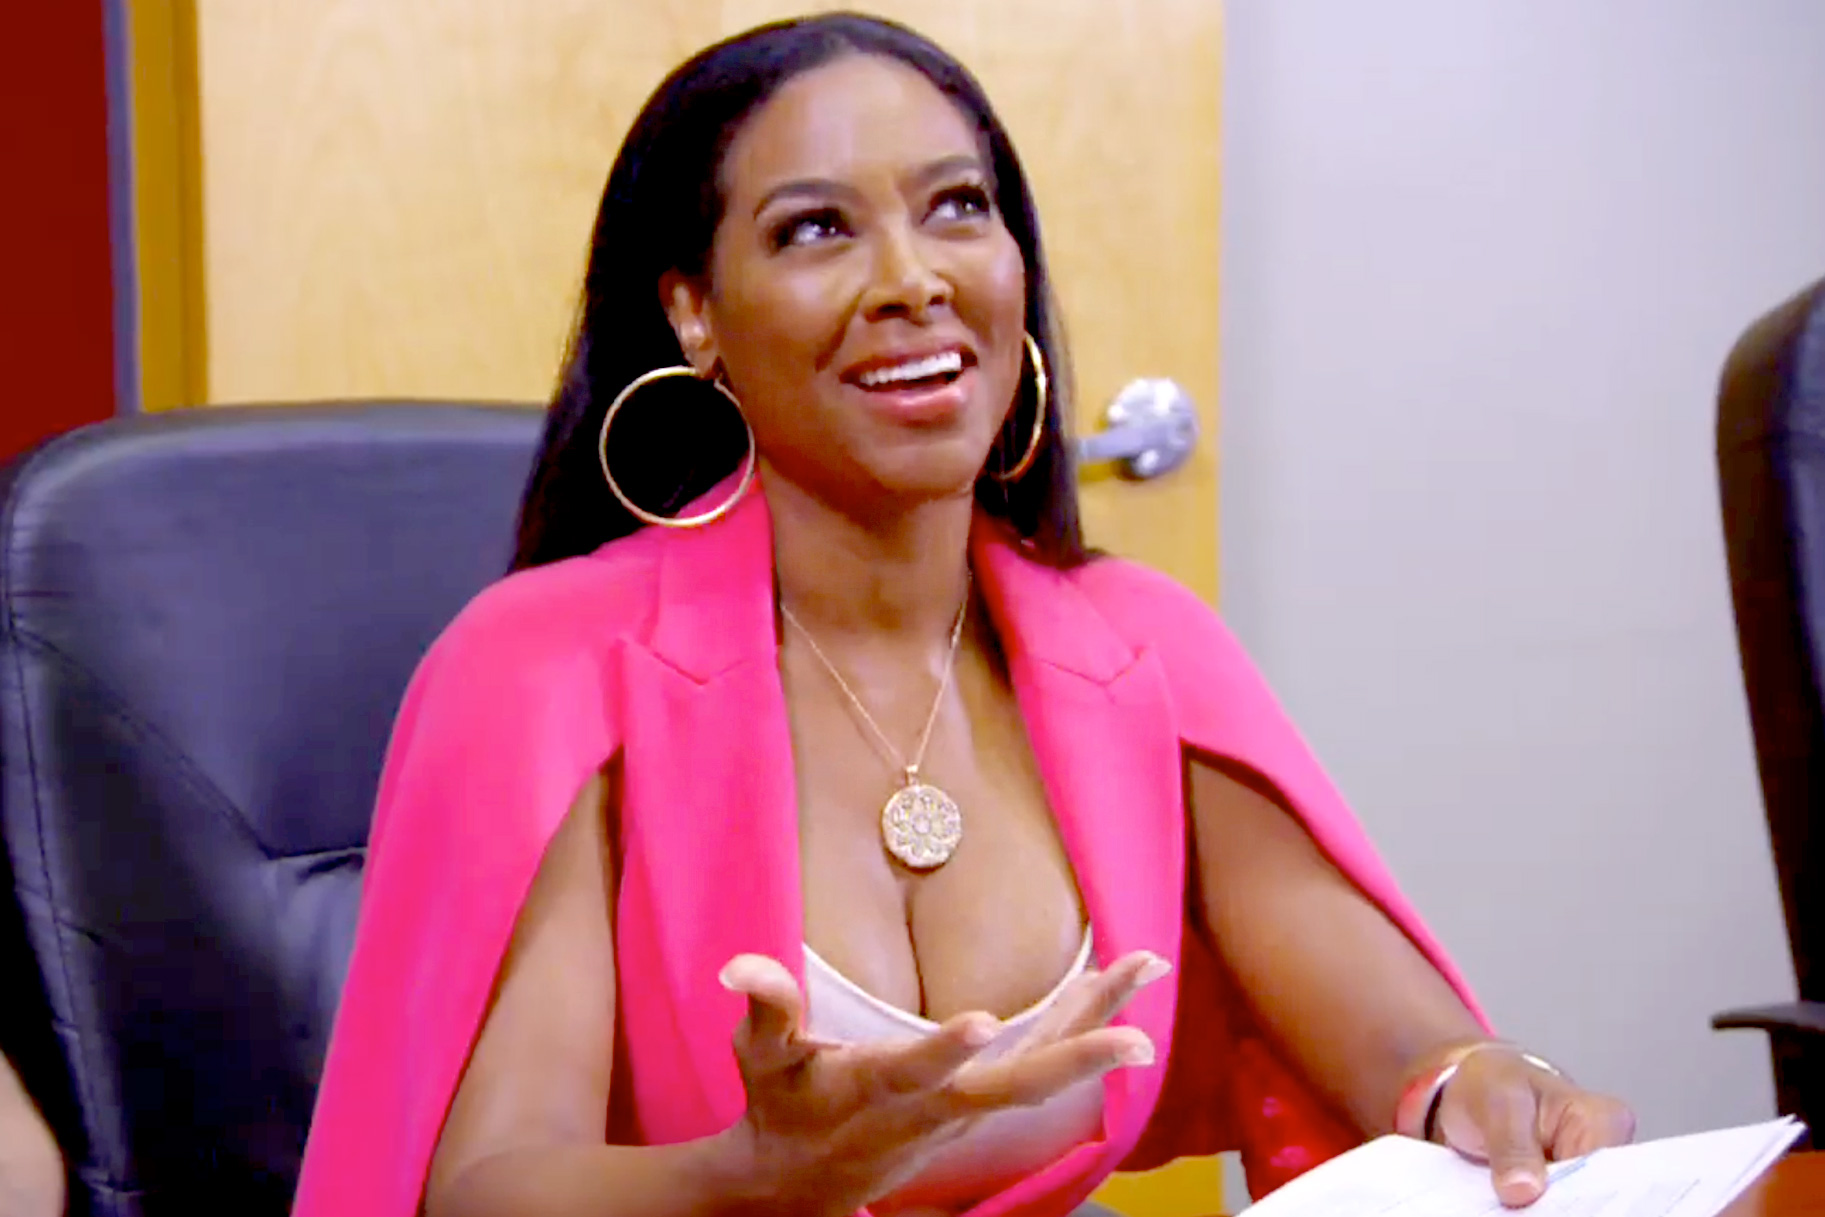 Kenya Moore Teams Up With A Popular Brand - Fans Offer Her Full Support